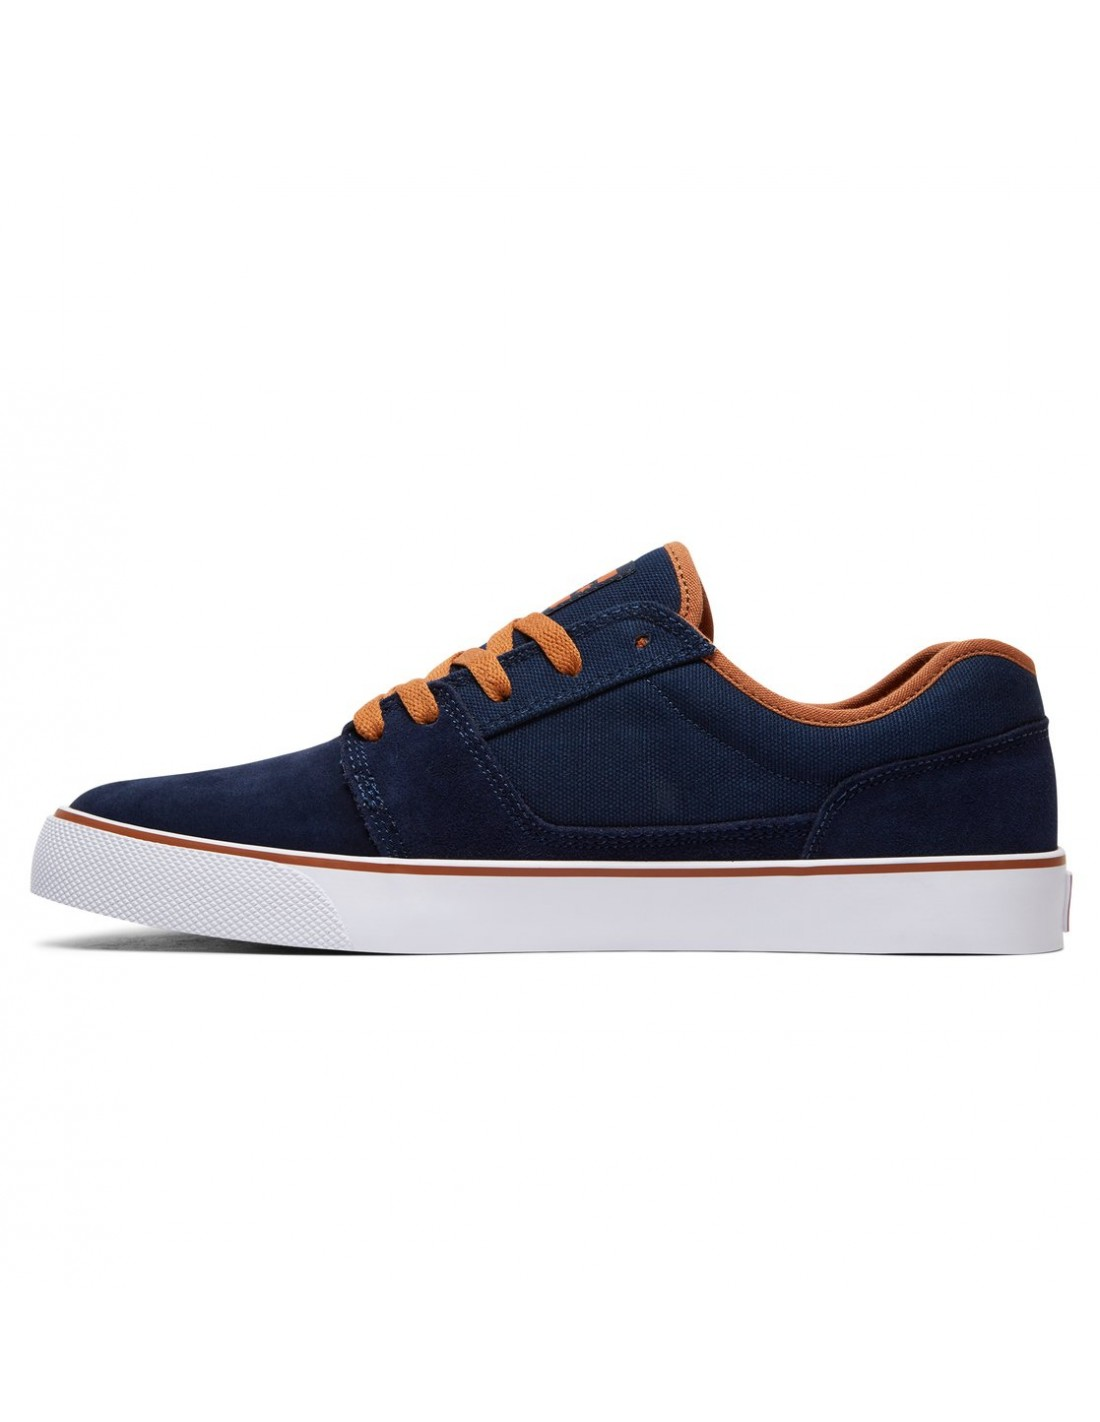 Chaussures DC Tonik Navy Bright Blue Nvb